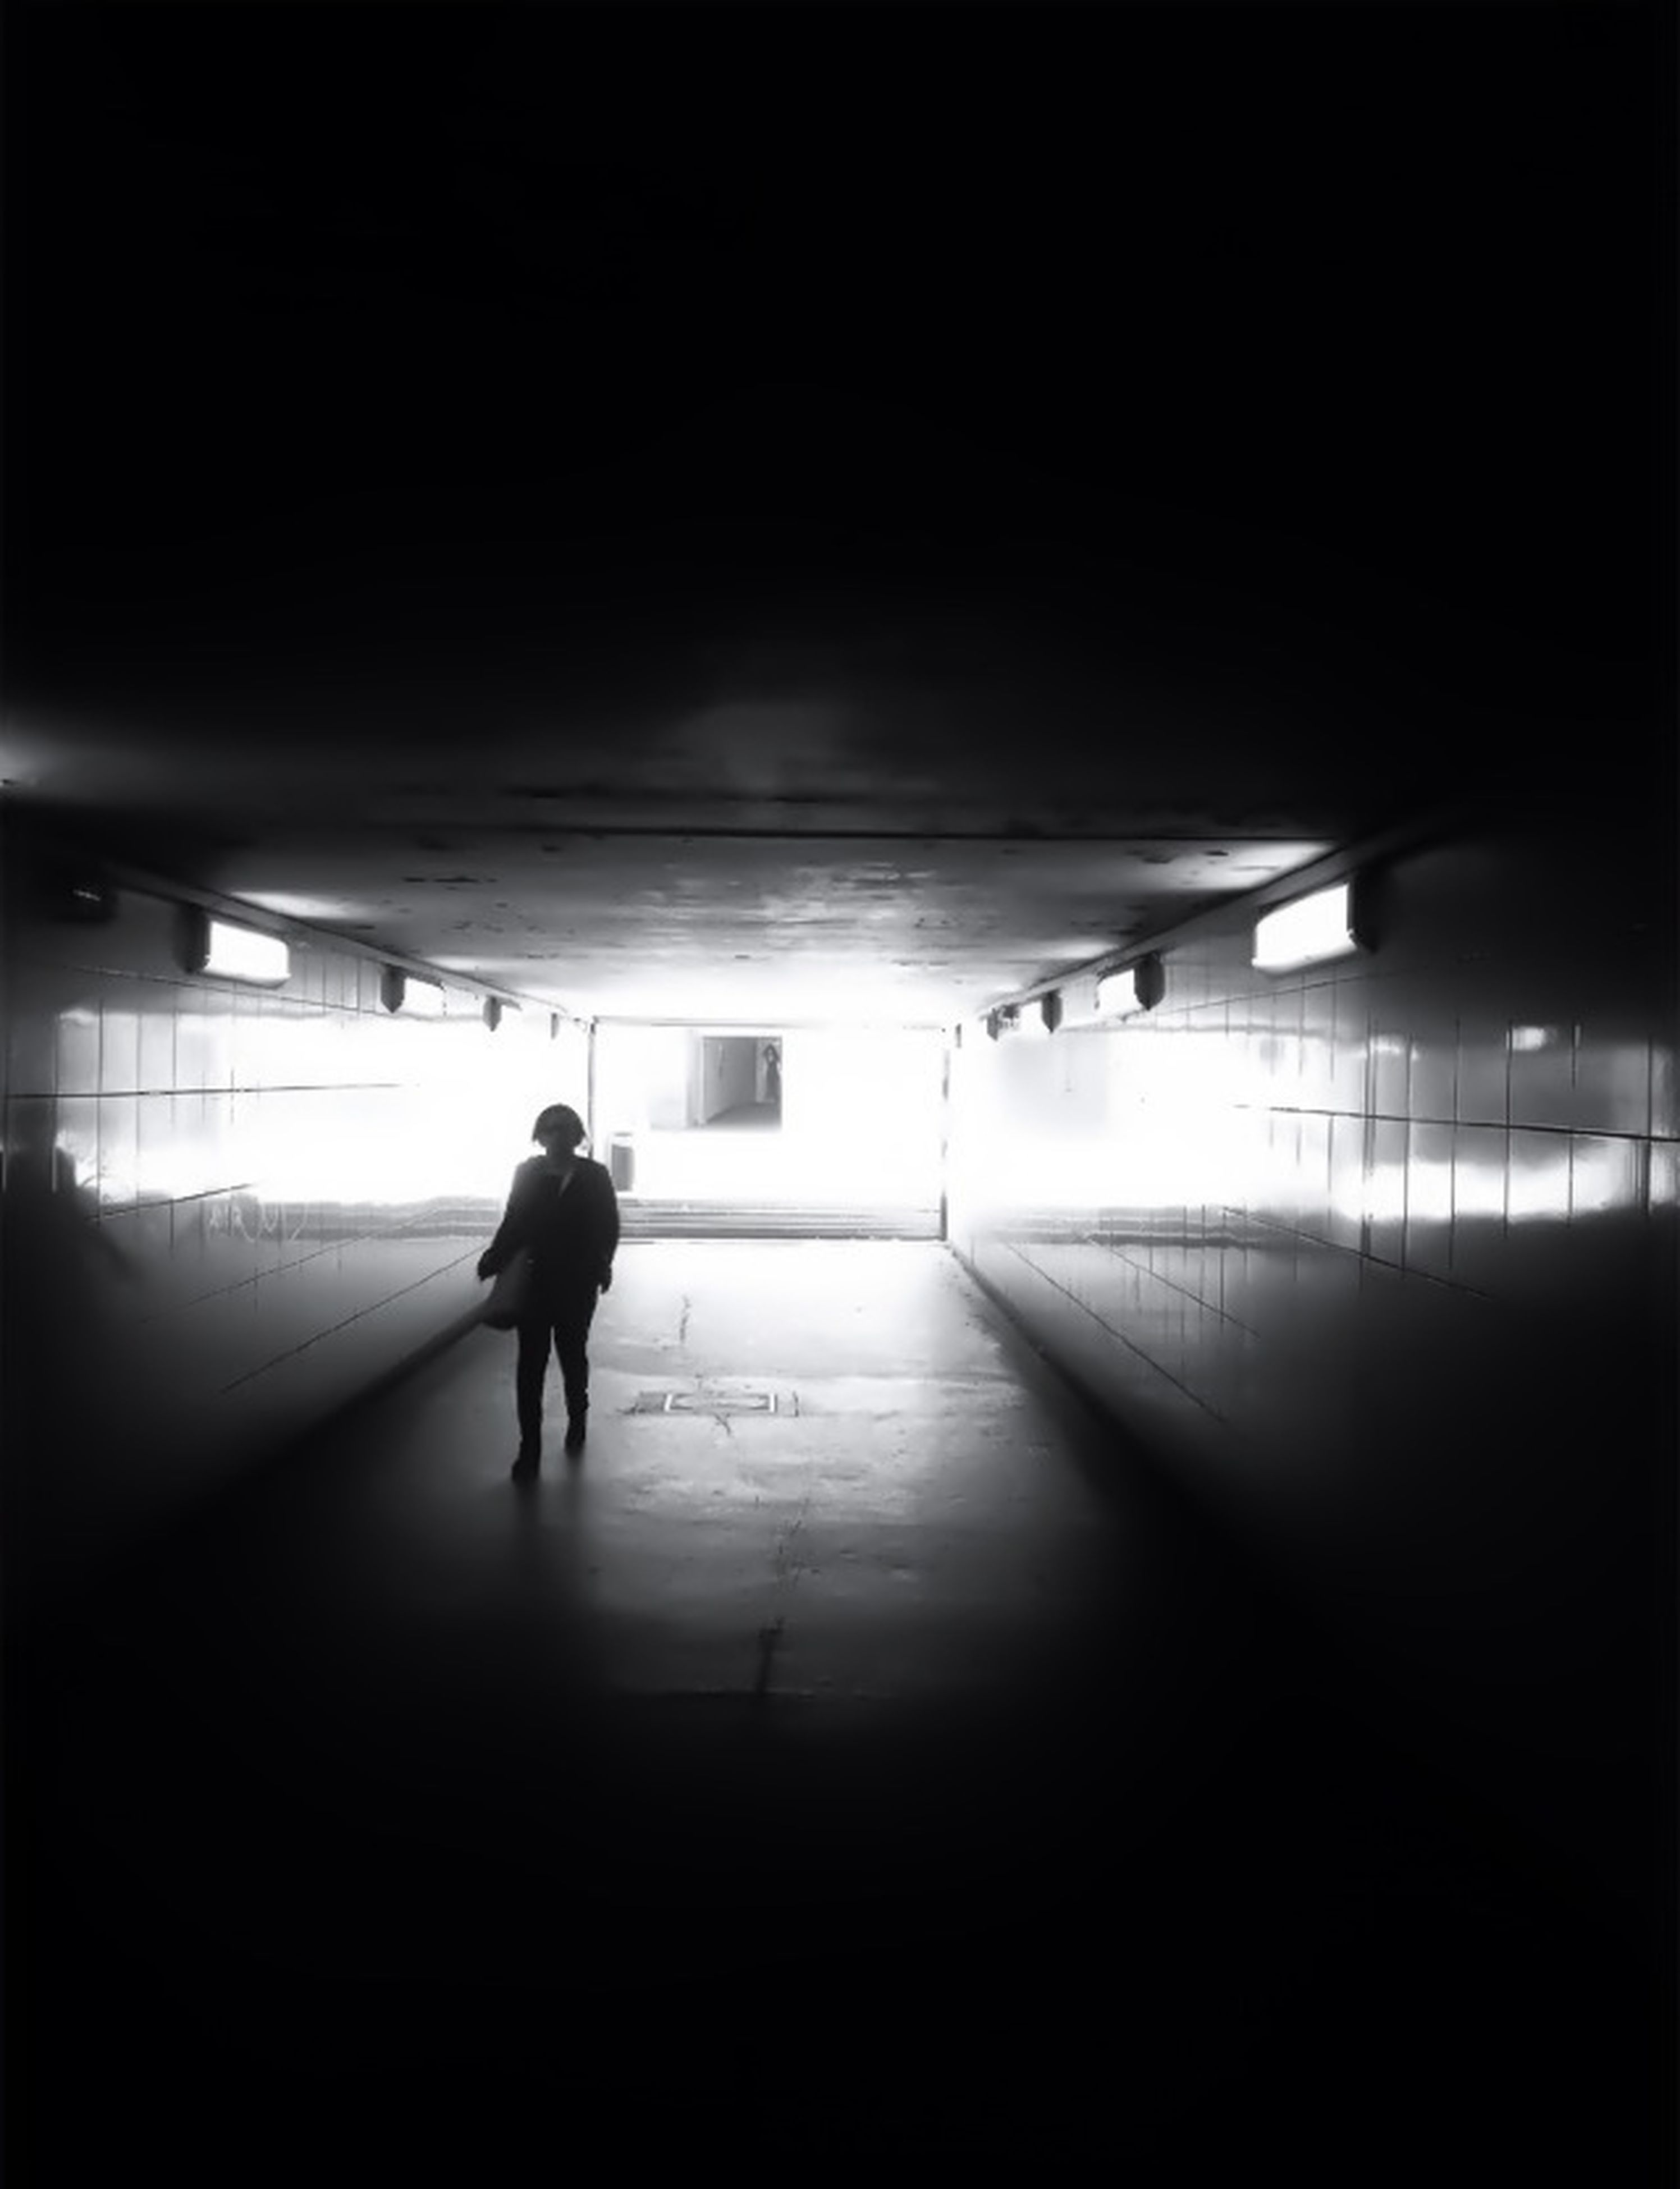 walking, men, full length, indoors, lifestyles, rear view, architecture, built structure, silhouette, person, illuminated, leisure activity, tunnel, the way forward, subway, standing, on the move